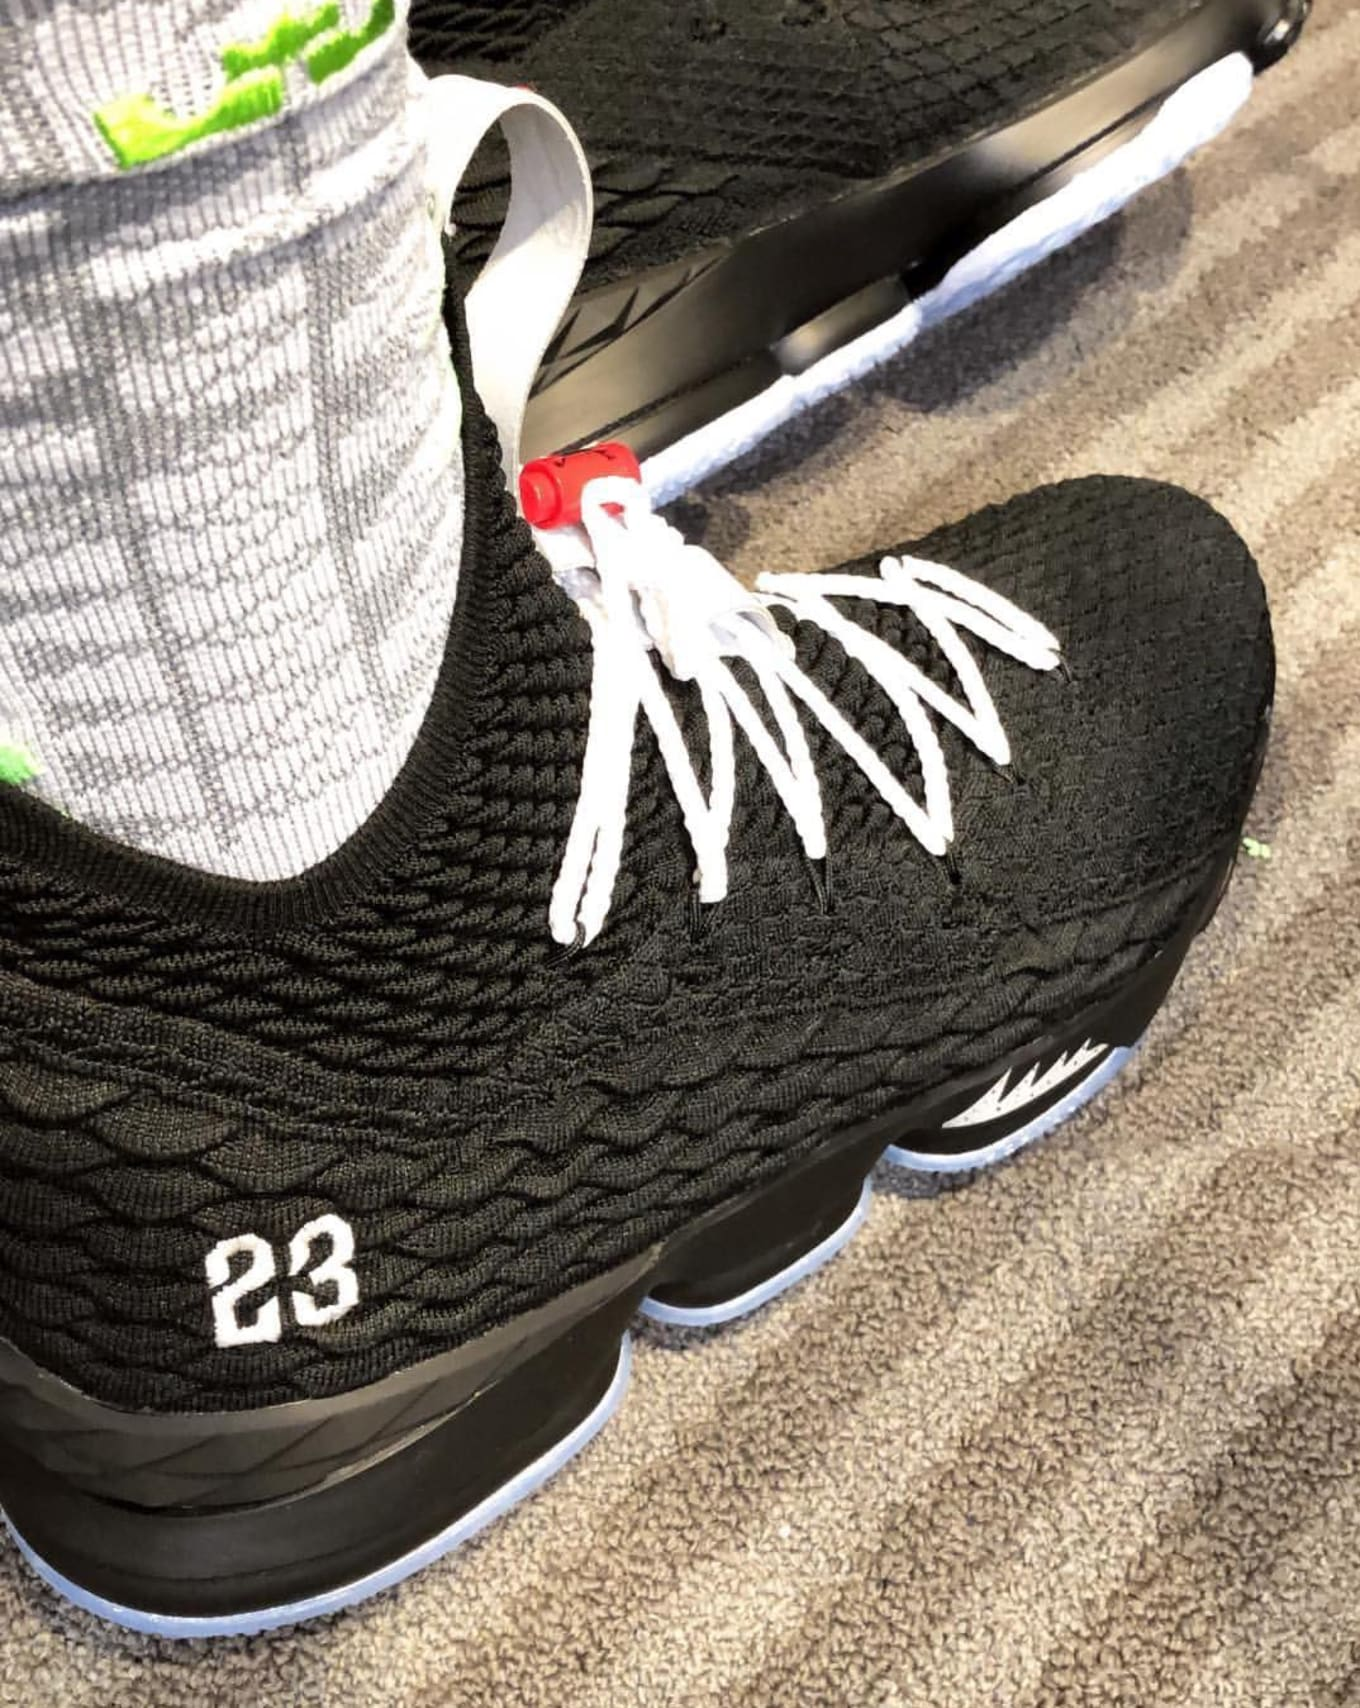 LeBron James Pays Tribute to Michael Jordan with Special Sneakers d1b9edfe9b3c